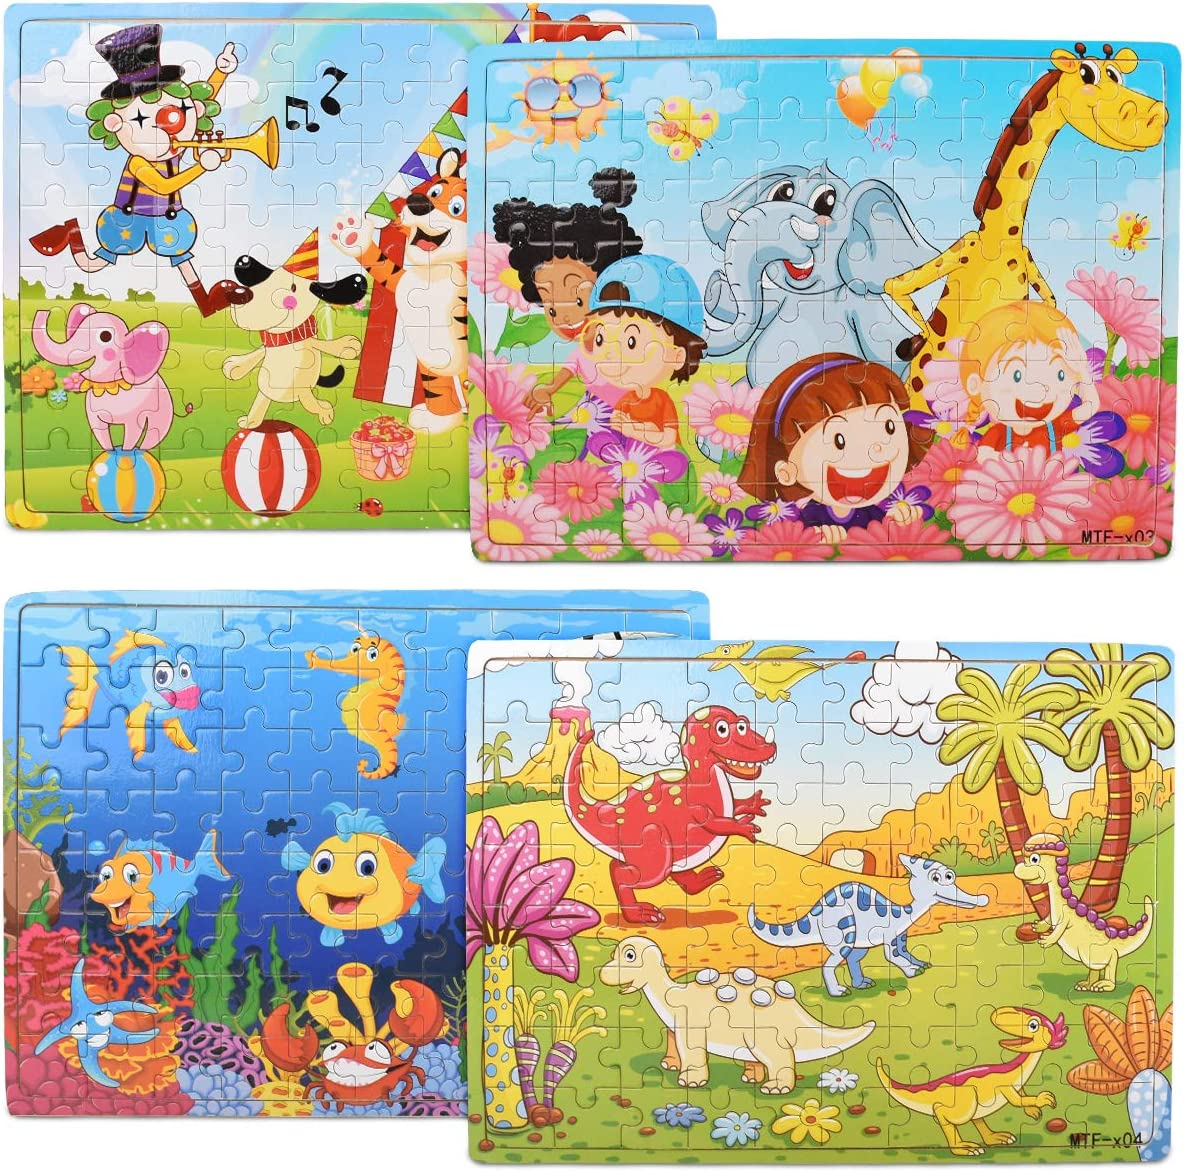 Wooden Puzzles for Kids Ages 3-8Year Old 80 Piece Colorful Wooden Puzzles for Toddler Children Learning Educational Puzzles Toys for Boys and Girls (4 Puzzles)